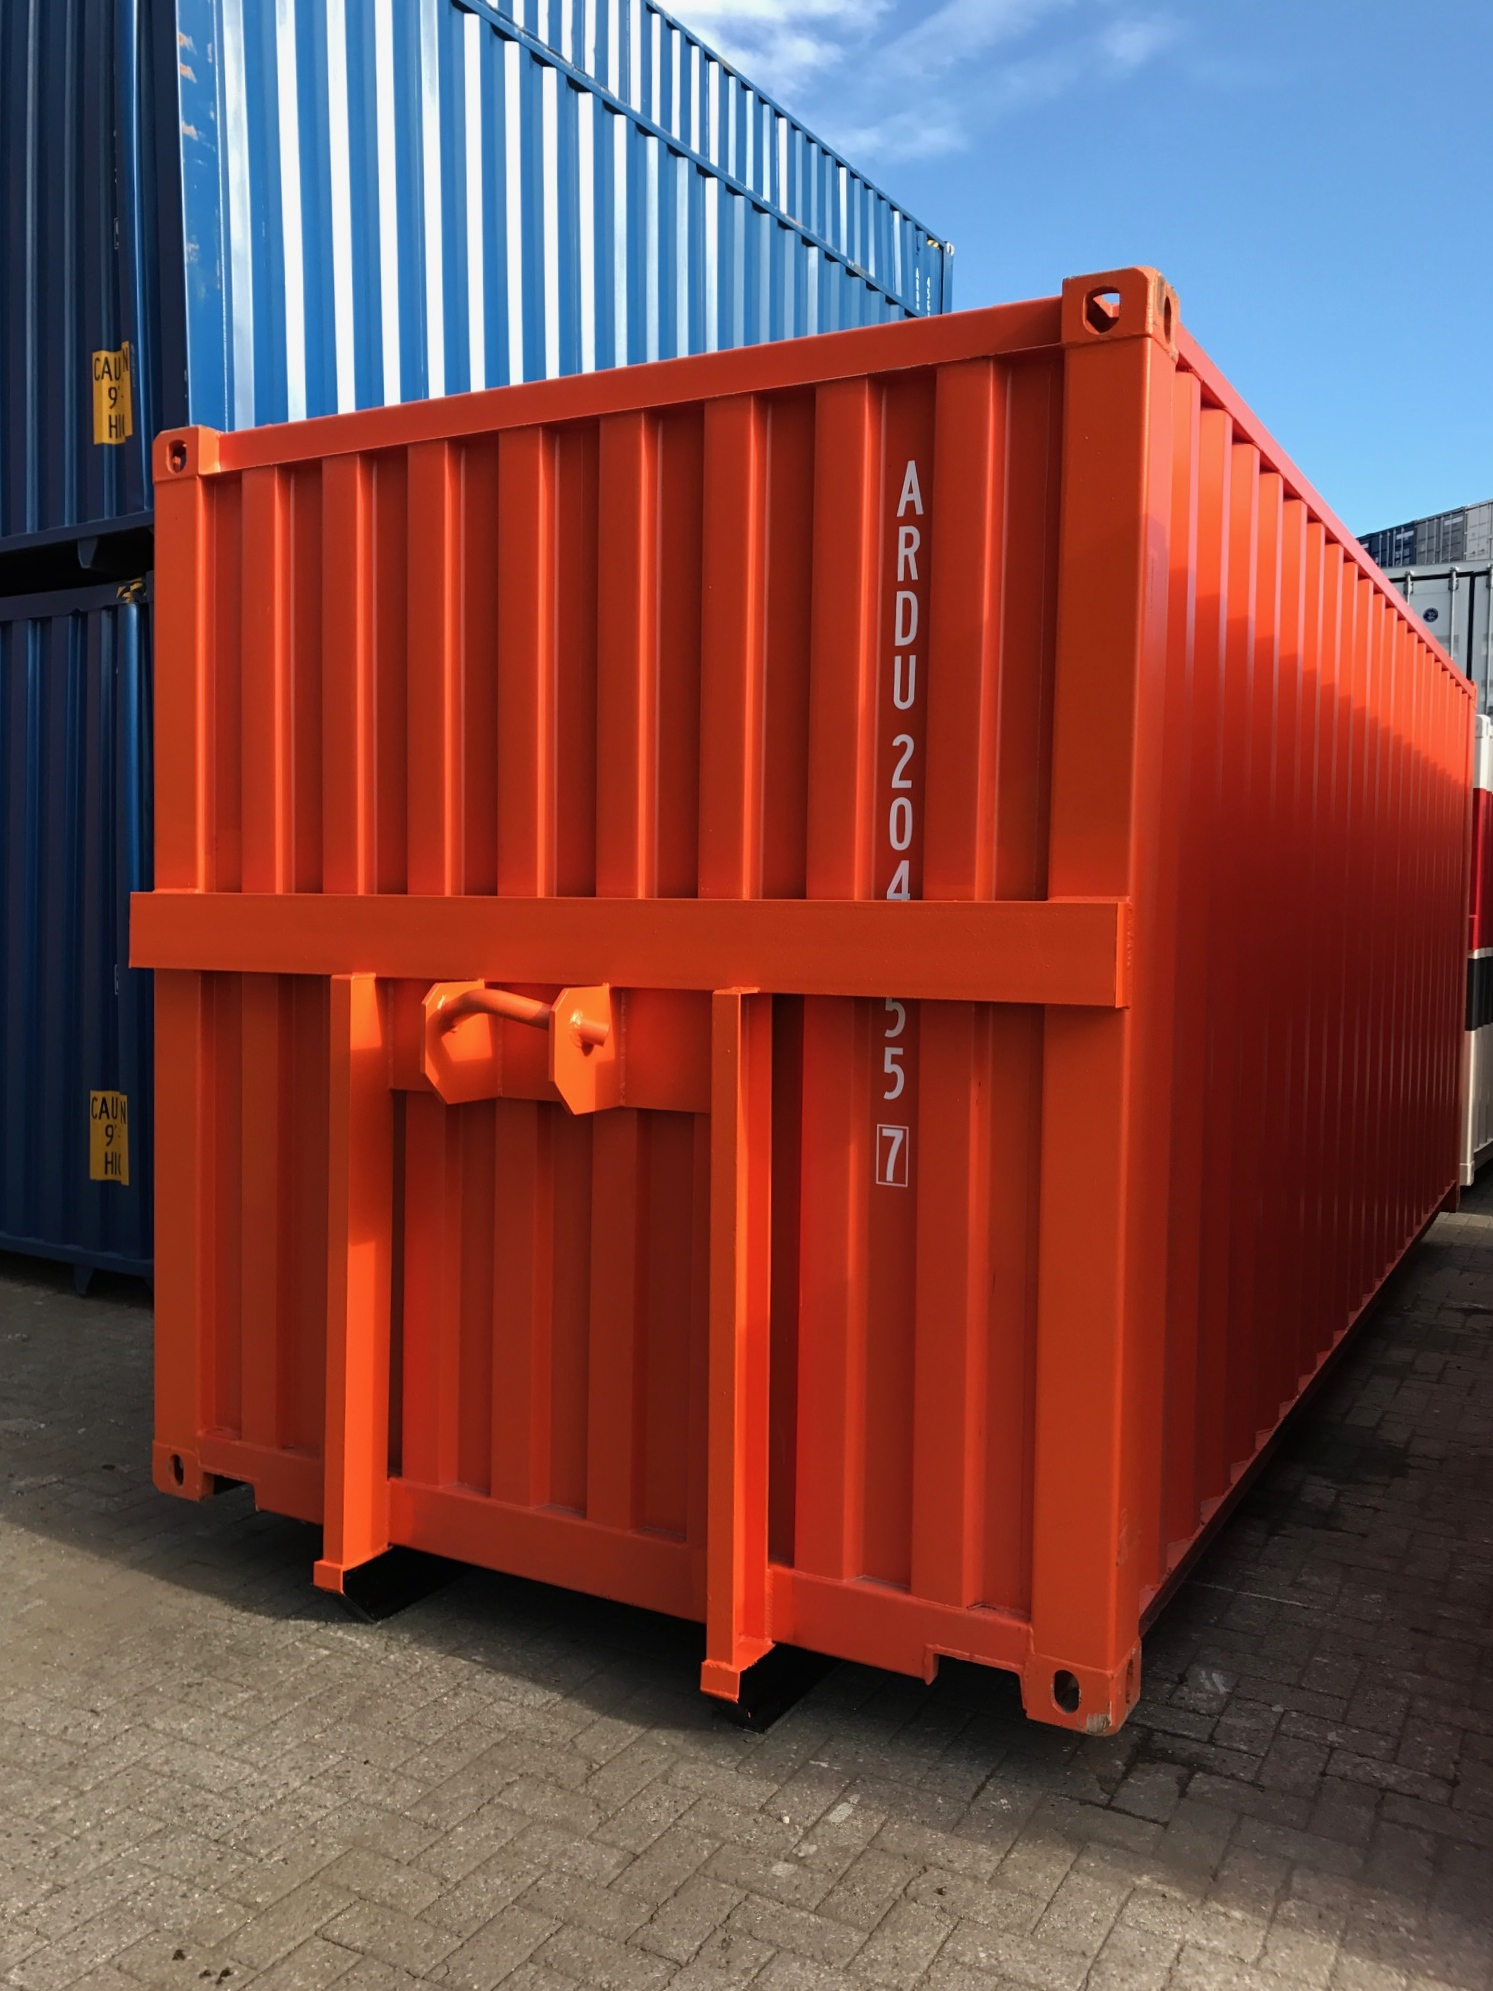 Best Kitchen Gallery: 20ft Shipping Container With Hook Lift System References of 20ft Shipping Container on rachelxblog.com